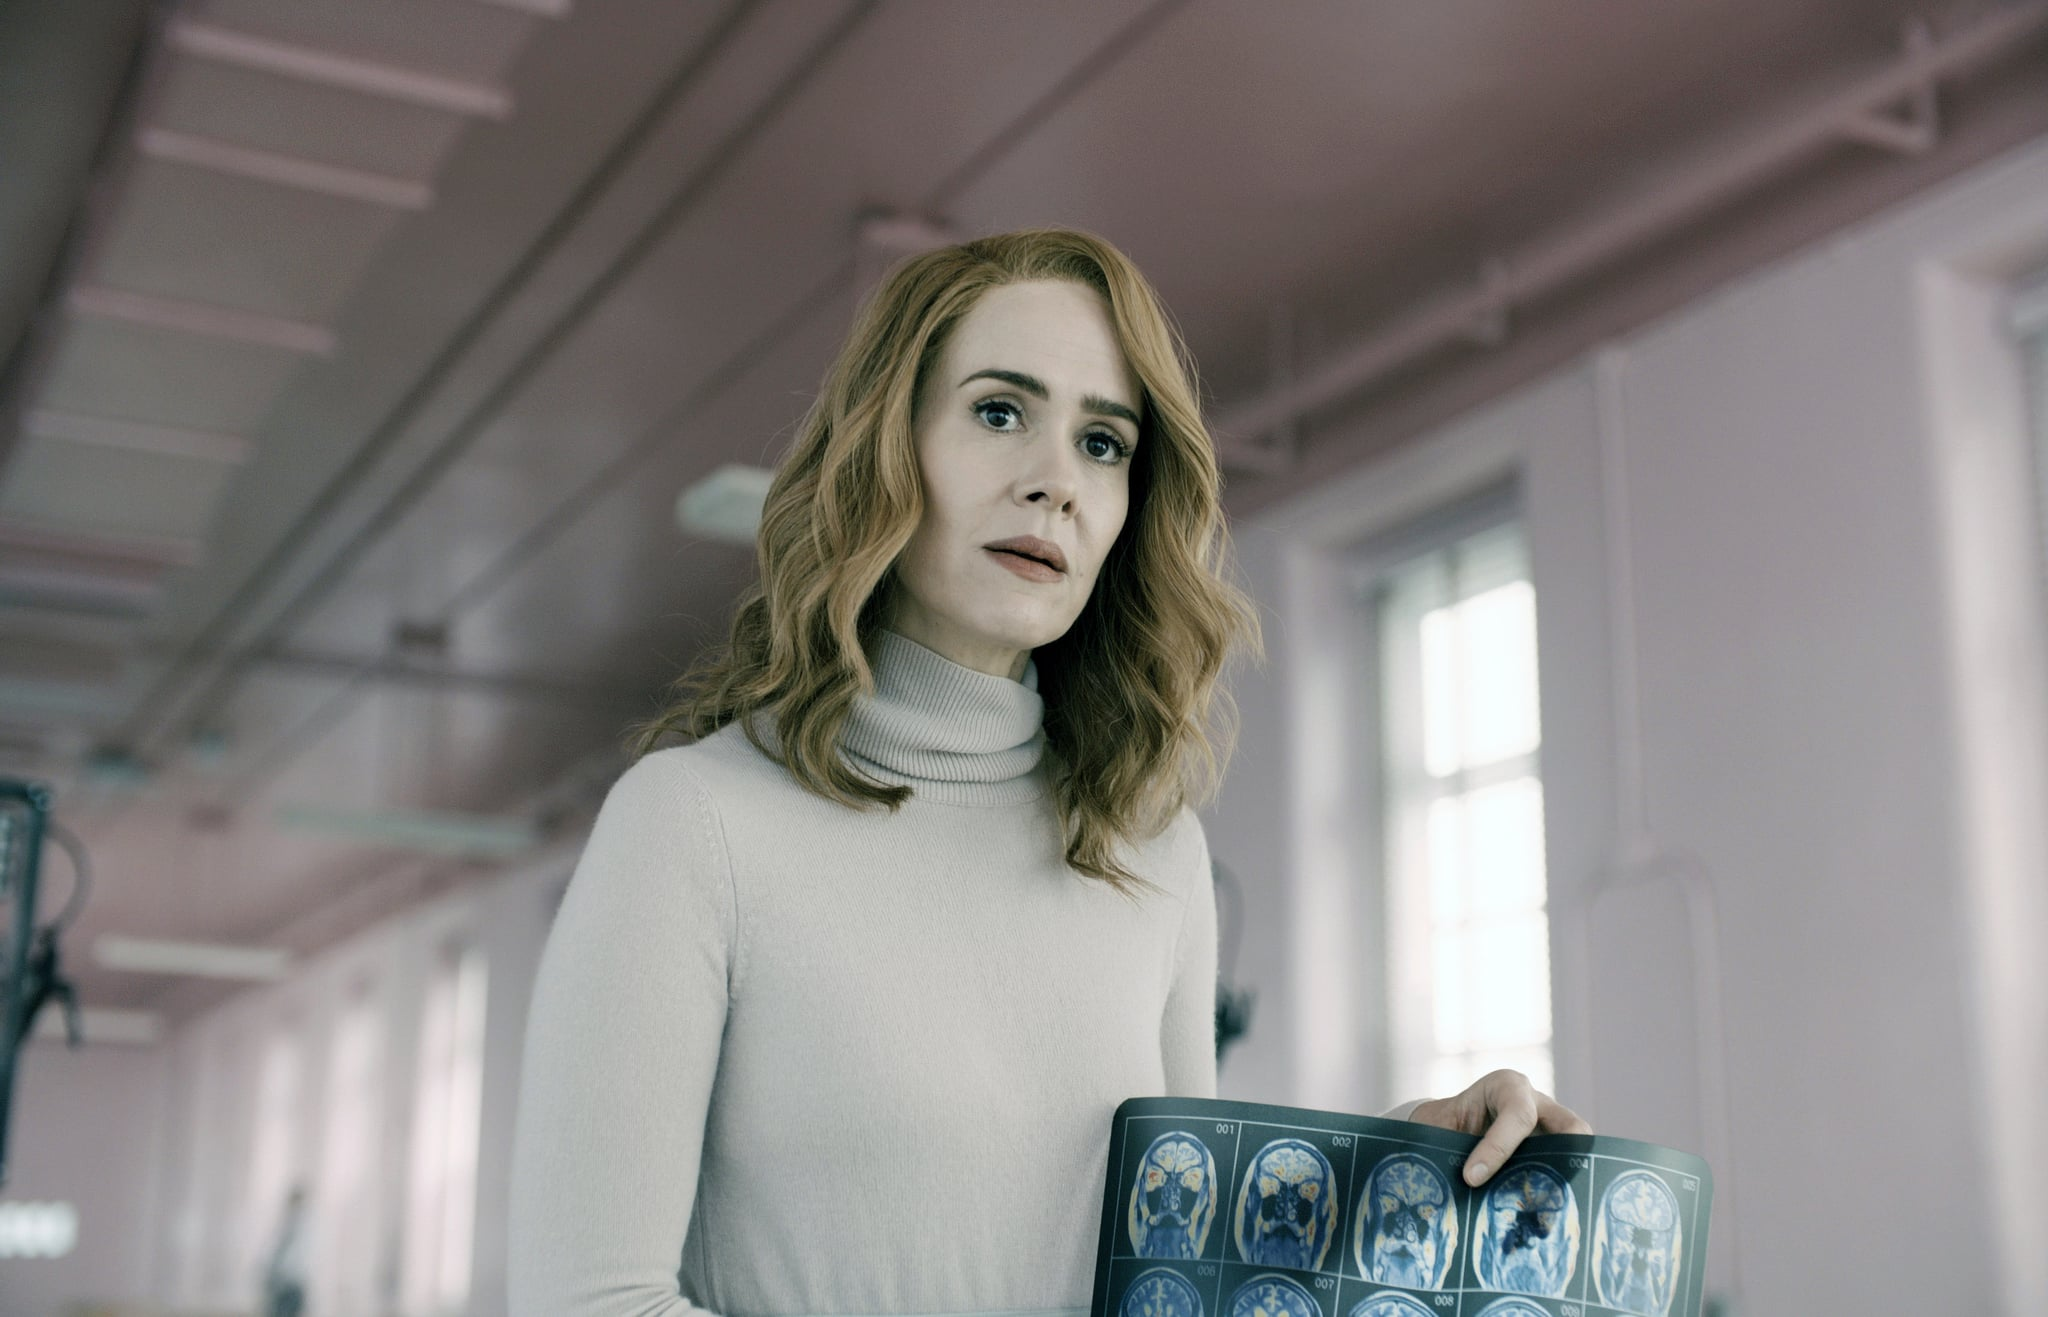 GLASS, Sarah Paulson, 2019.  Universal / courtesy Everett Collection